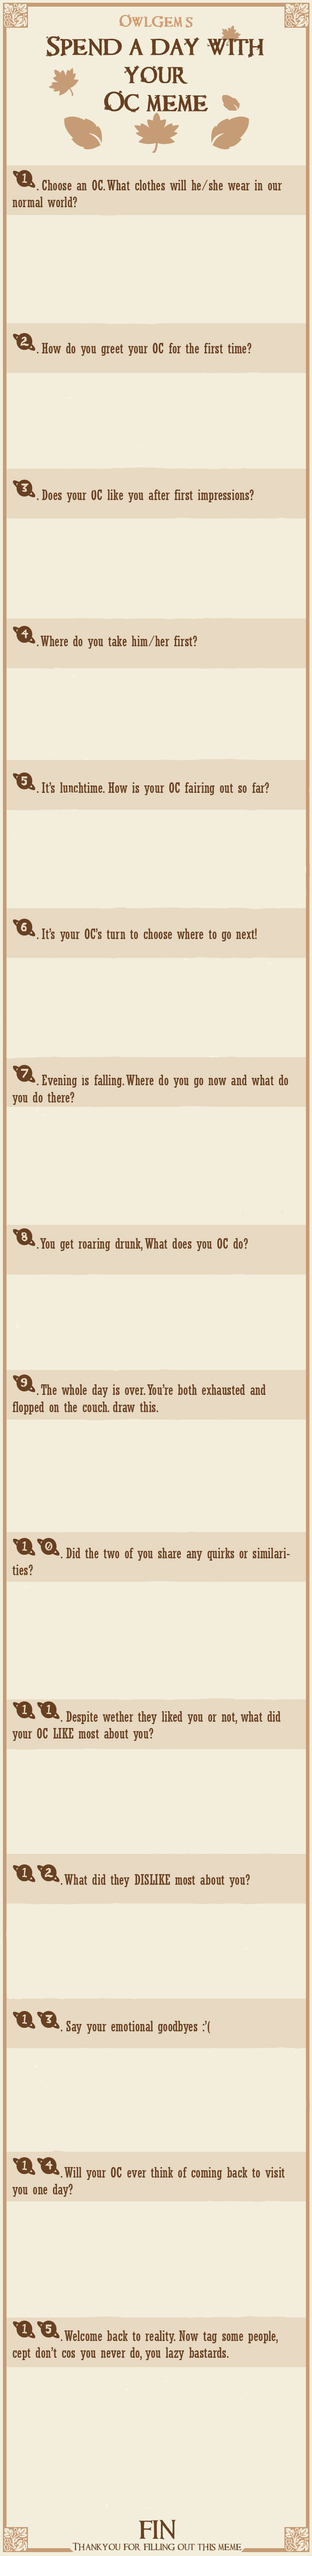 Spend a Day With Your OC Meme - Blank Template by Intelius